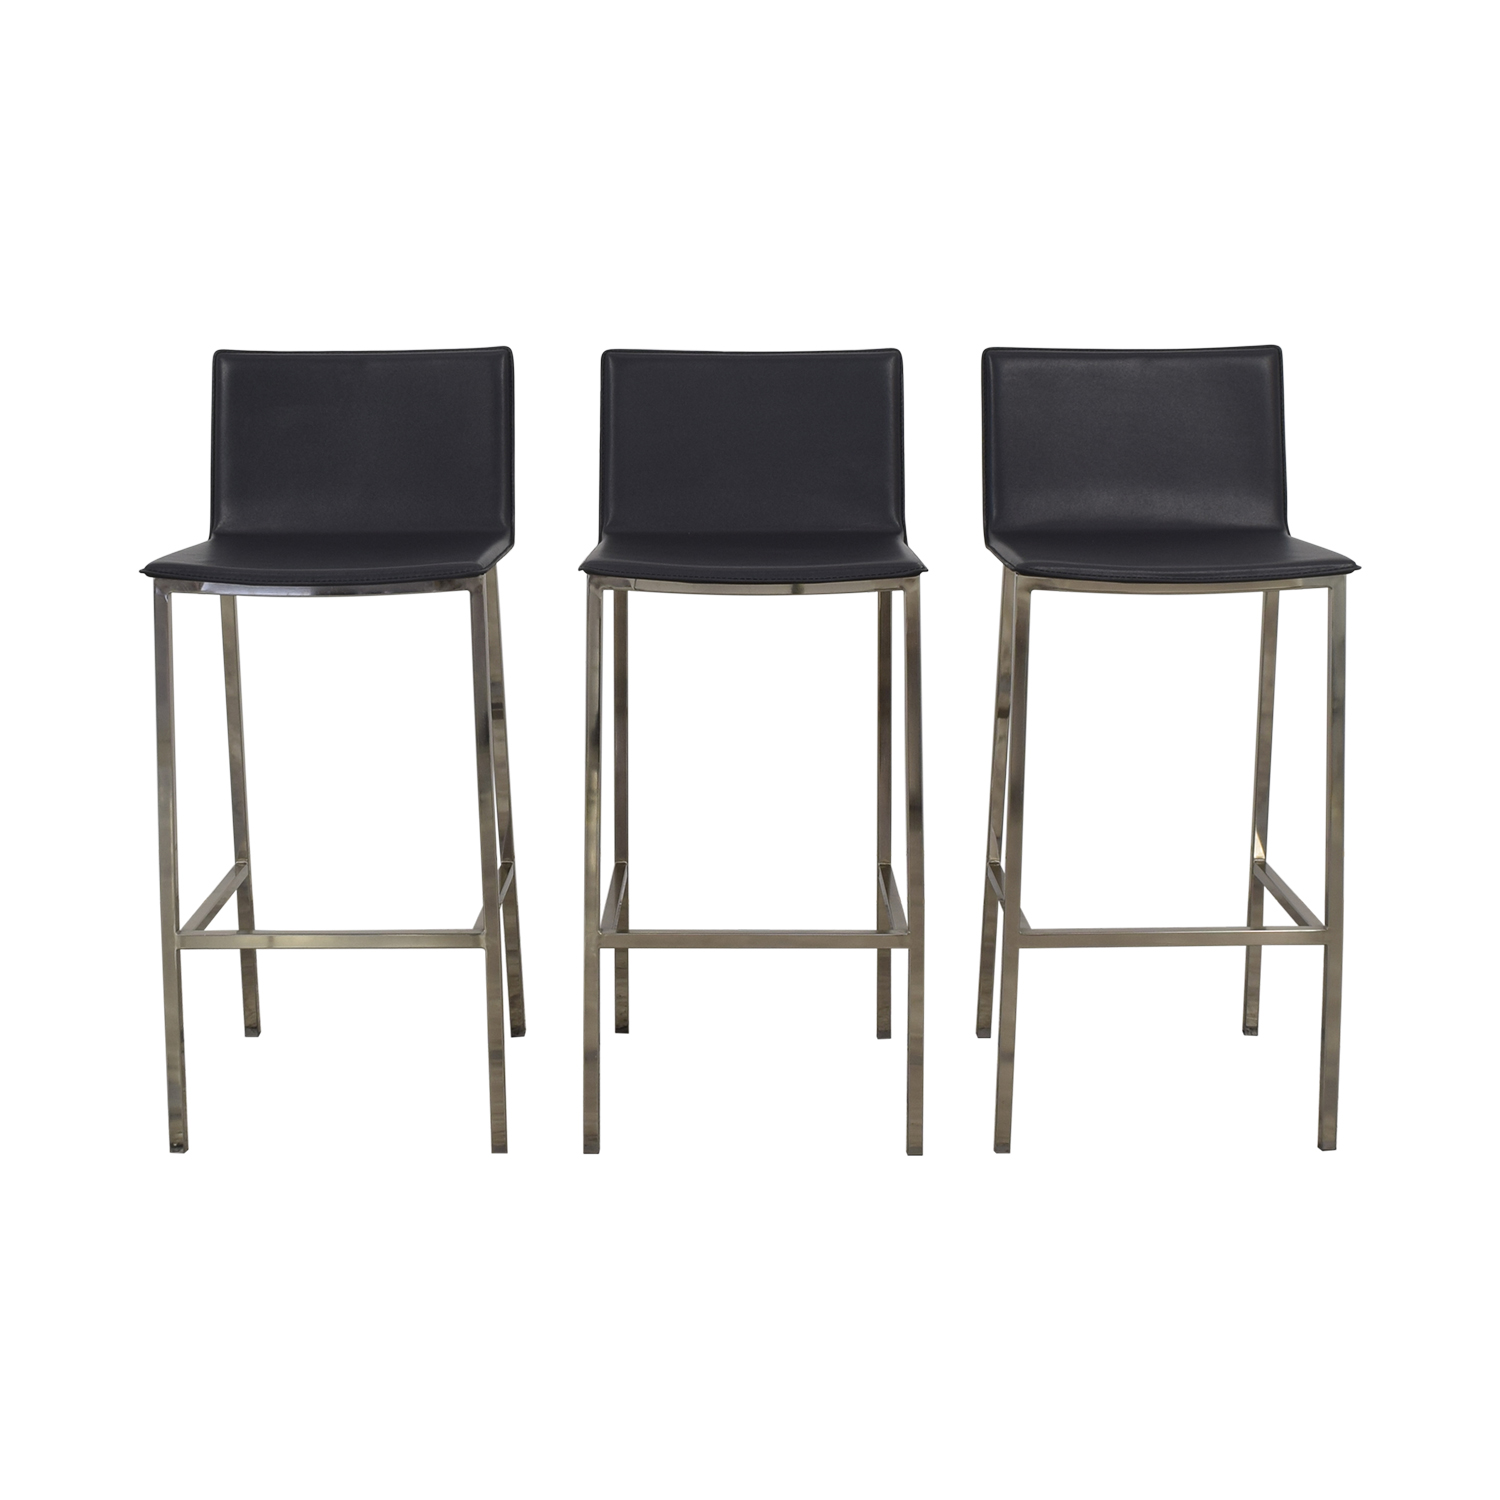 CB2 CB2 Phoenix Bar Stools used